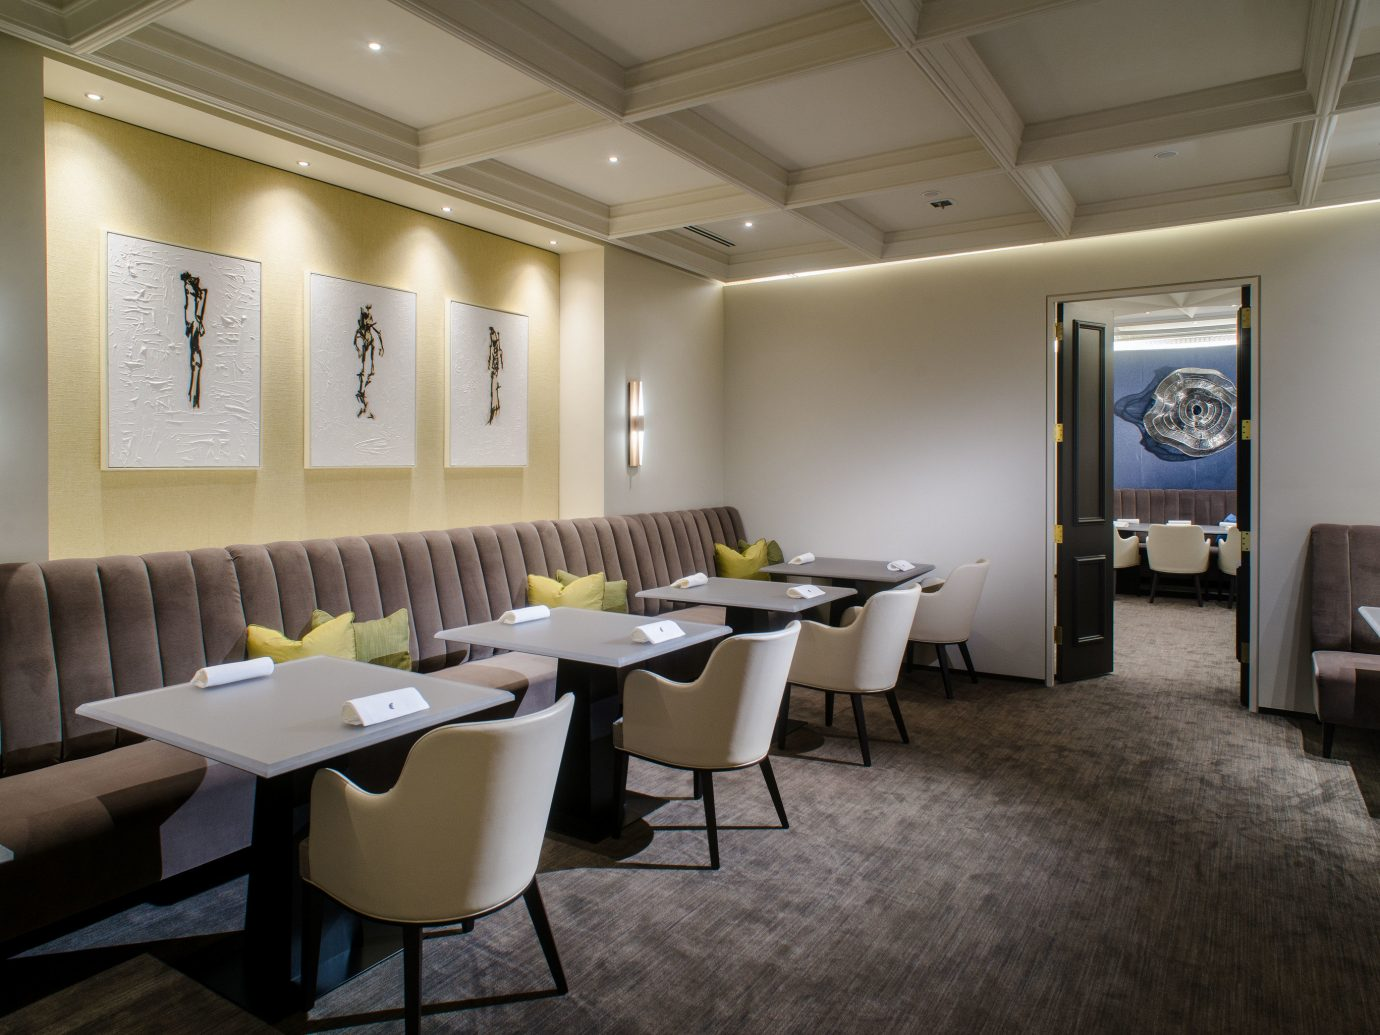 Food + Drink indoor floor ceiling wall table room chair property conference hall hotel furniture interior design real estate waiting room function hall Design area restaurant convention center several